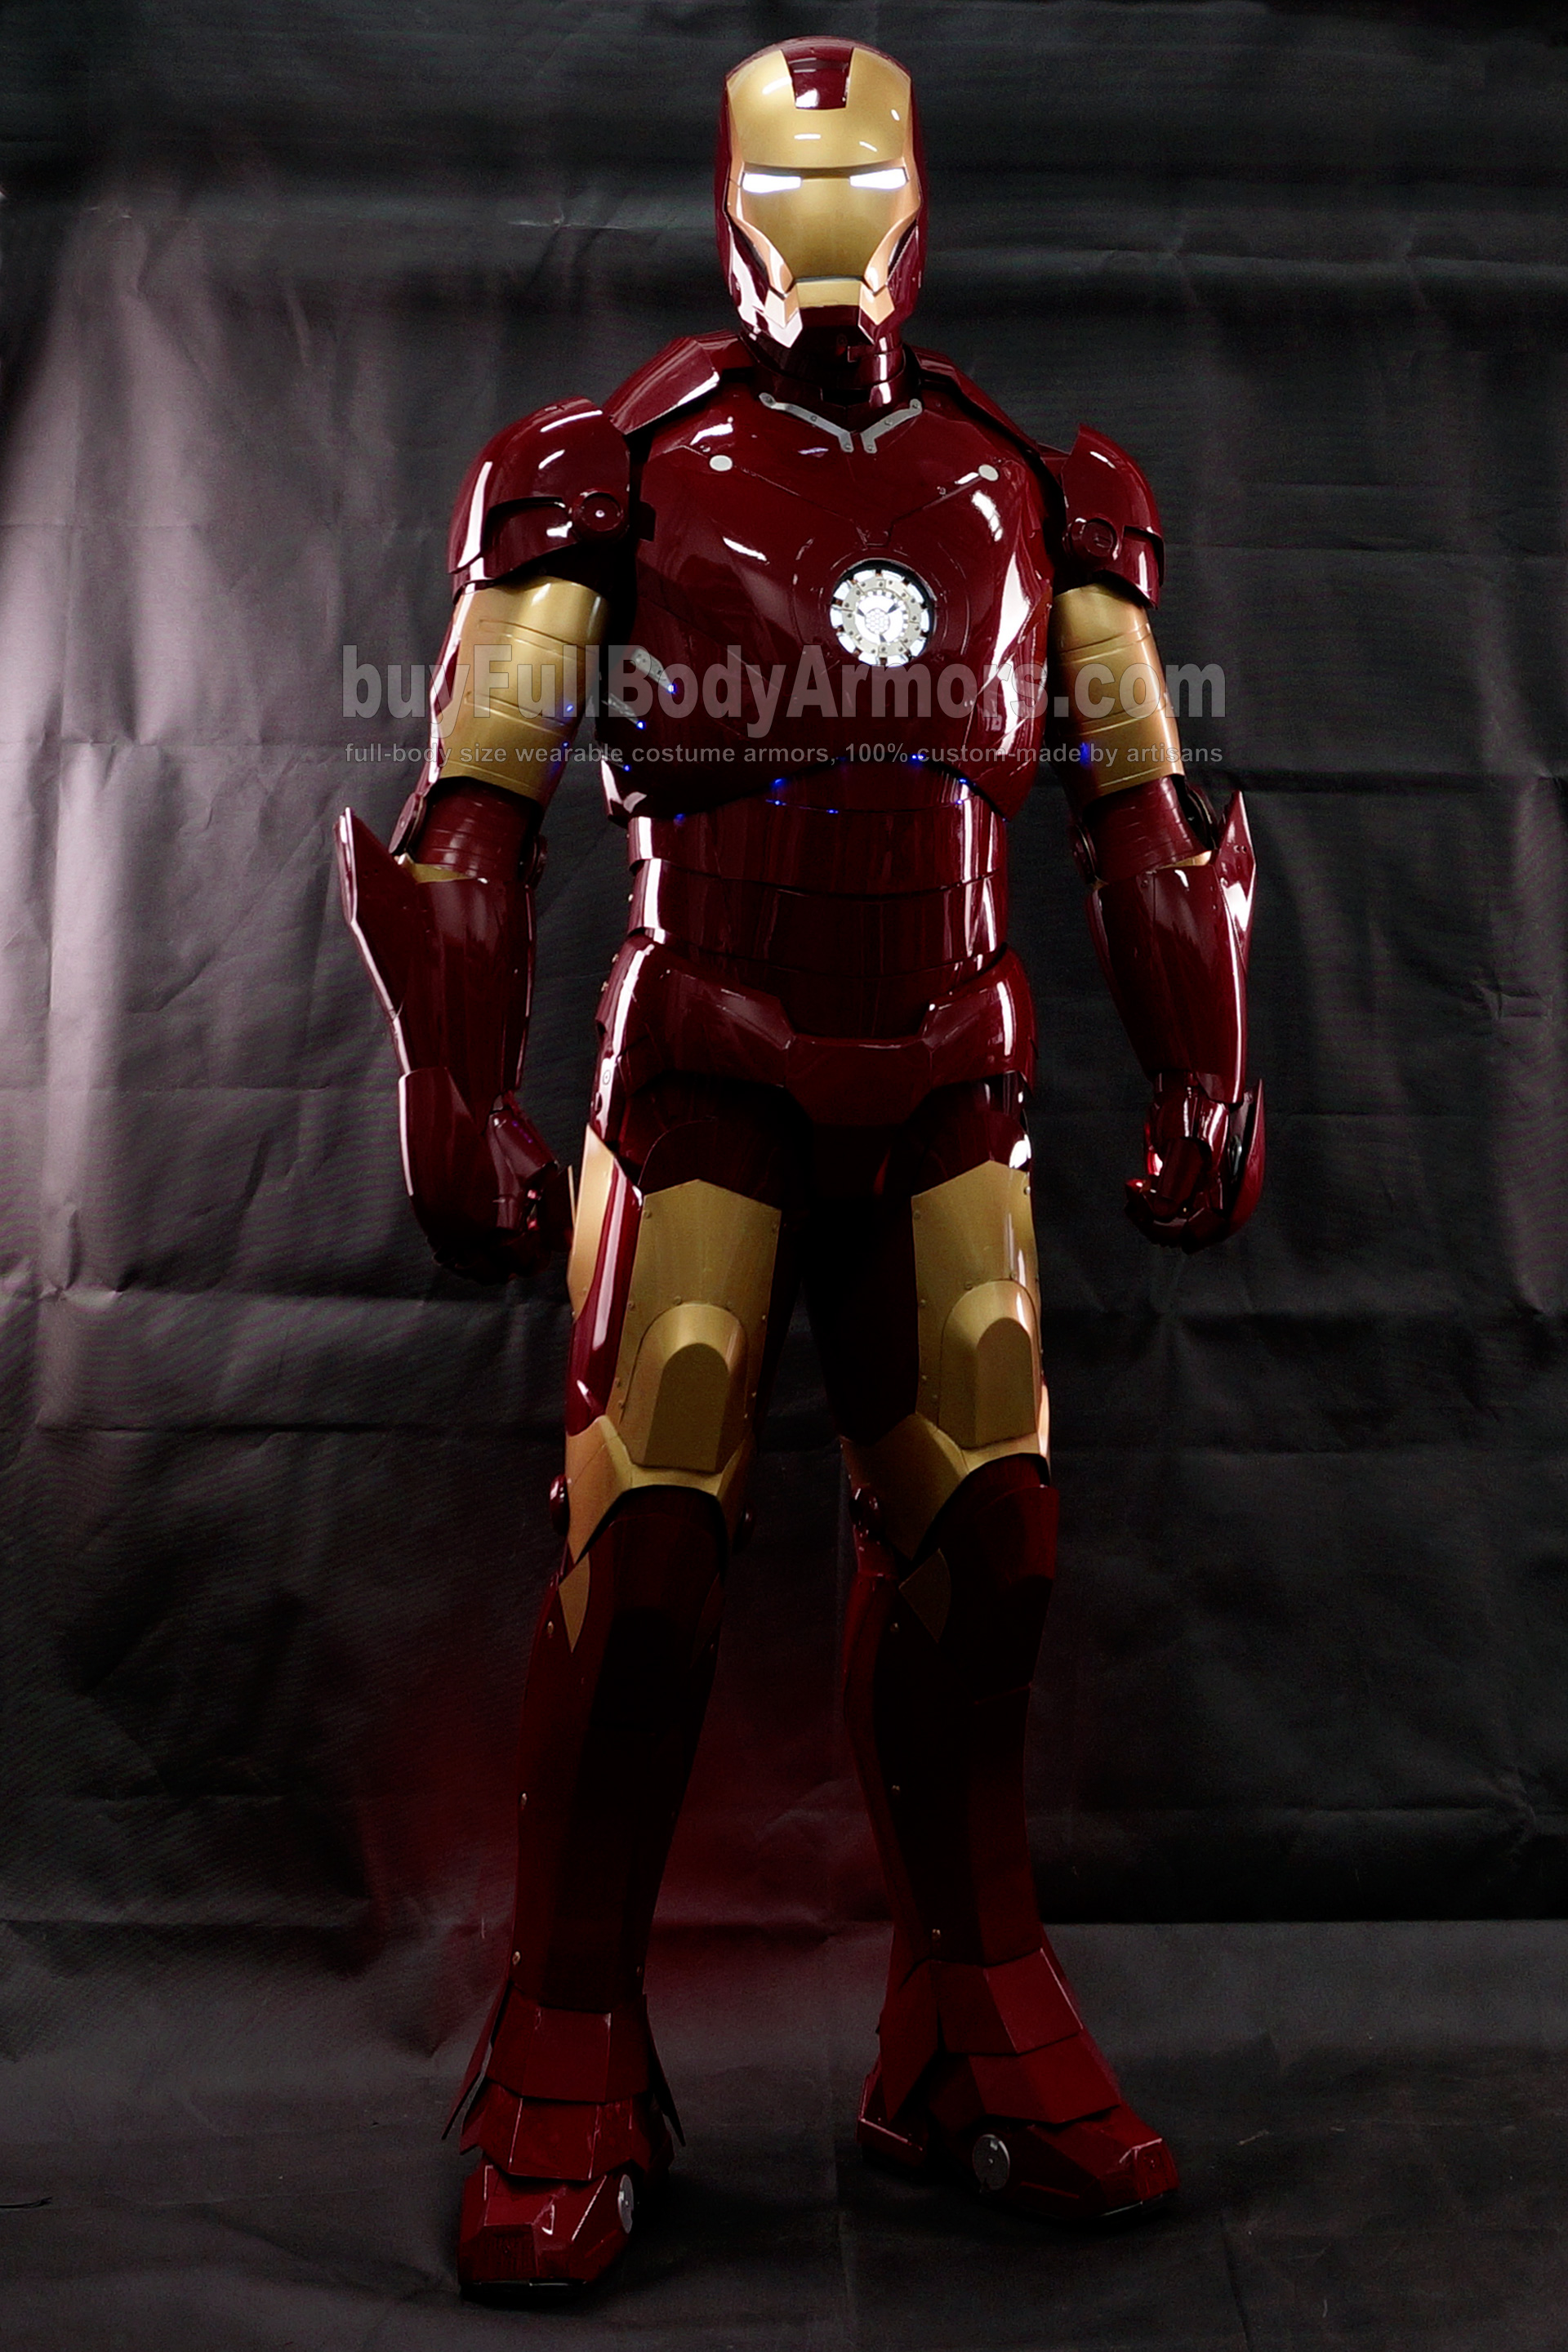 Buy Iron Man suit, Halo Master Chief armor, Batman costume ...